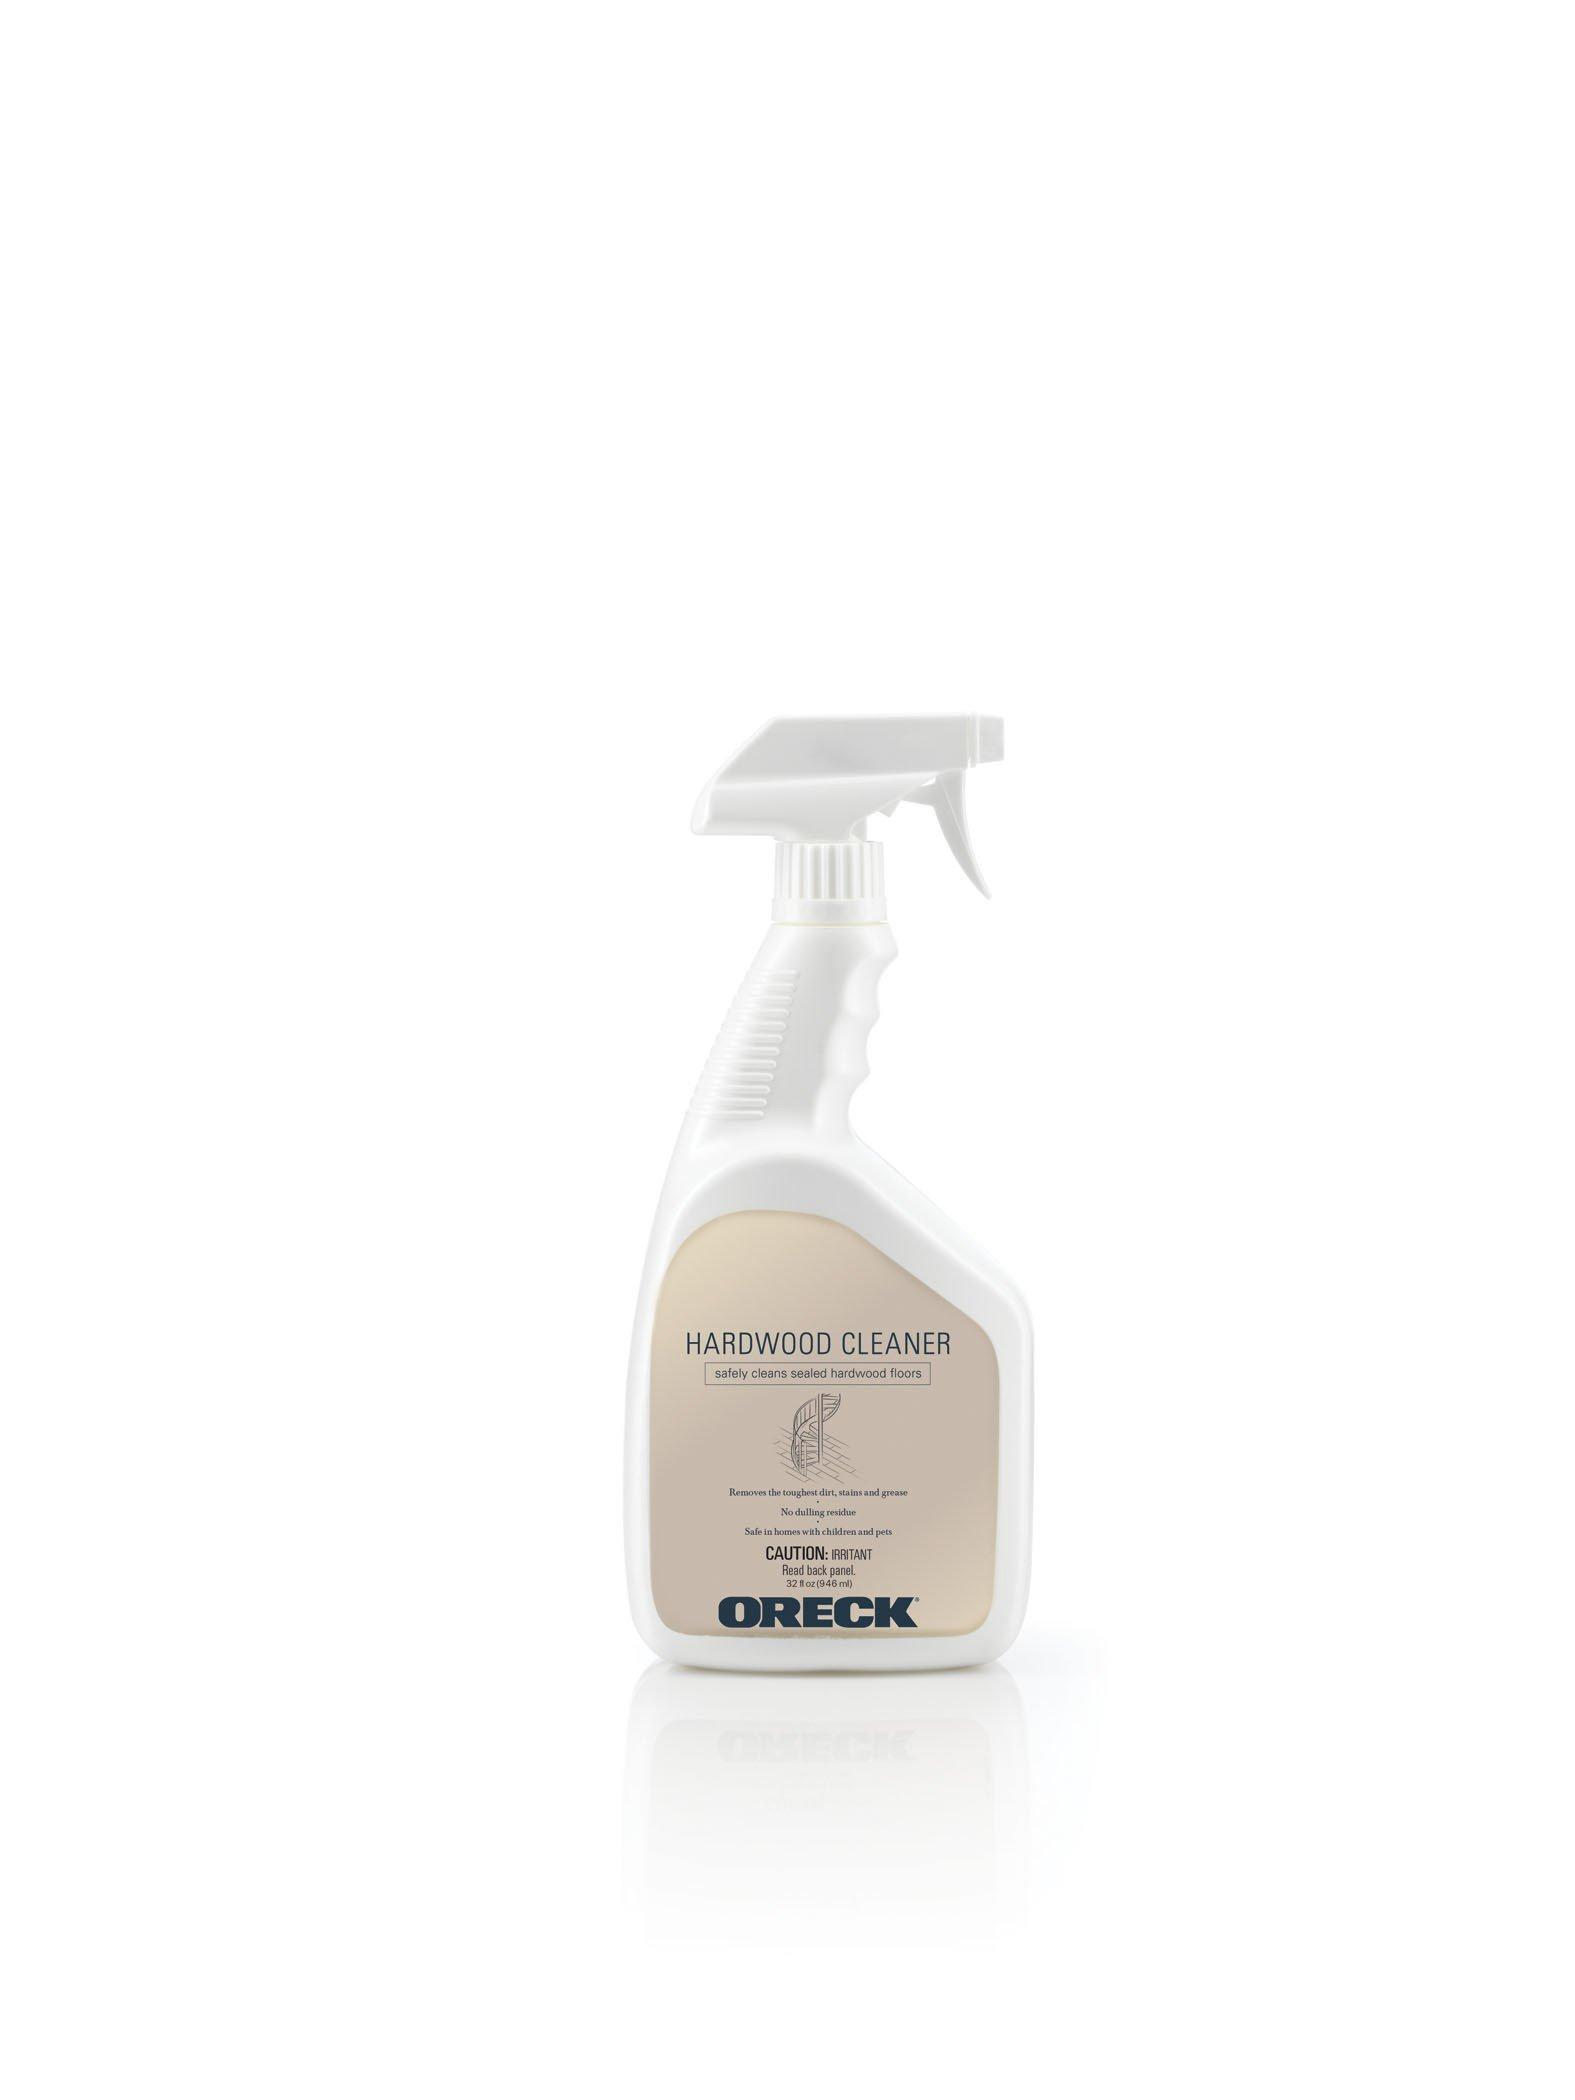 Hardwood Cleaner - 32oz.1